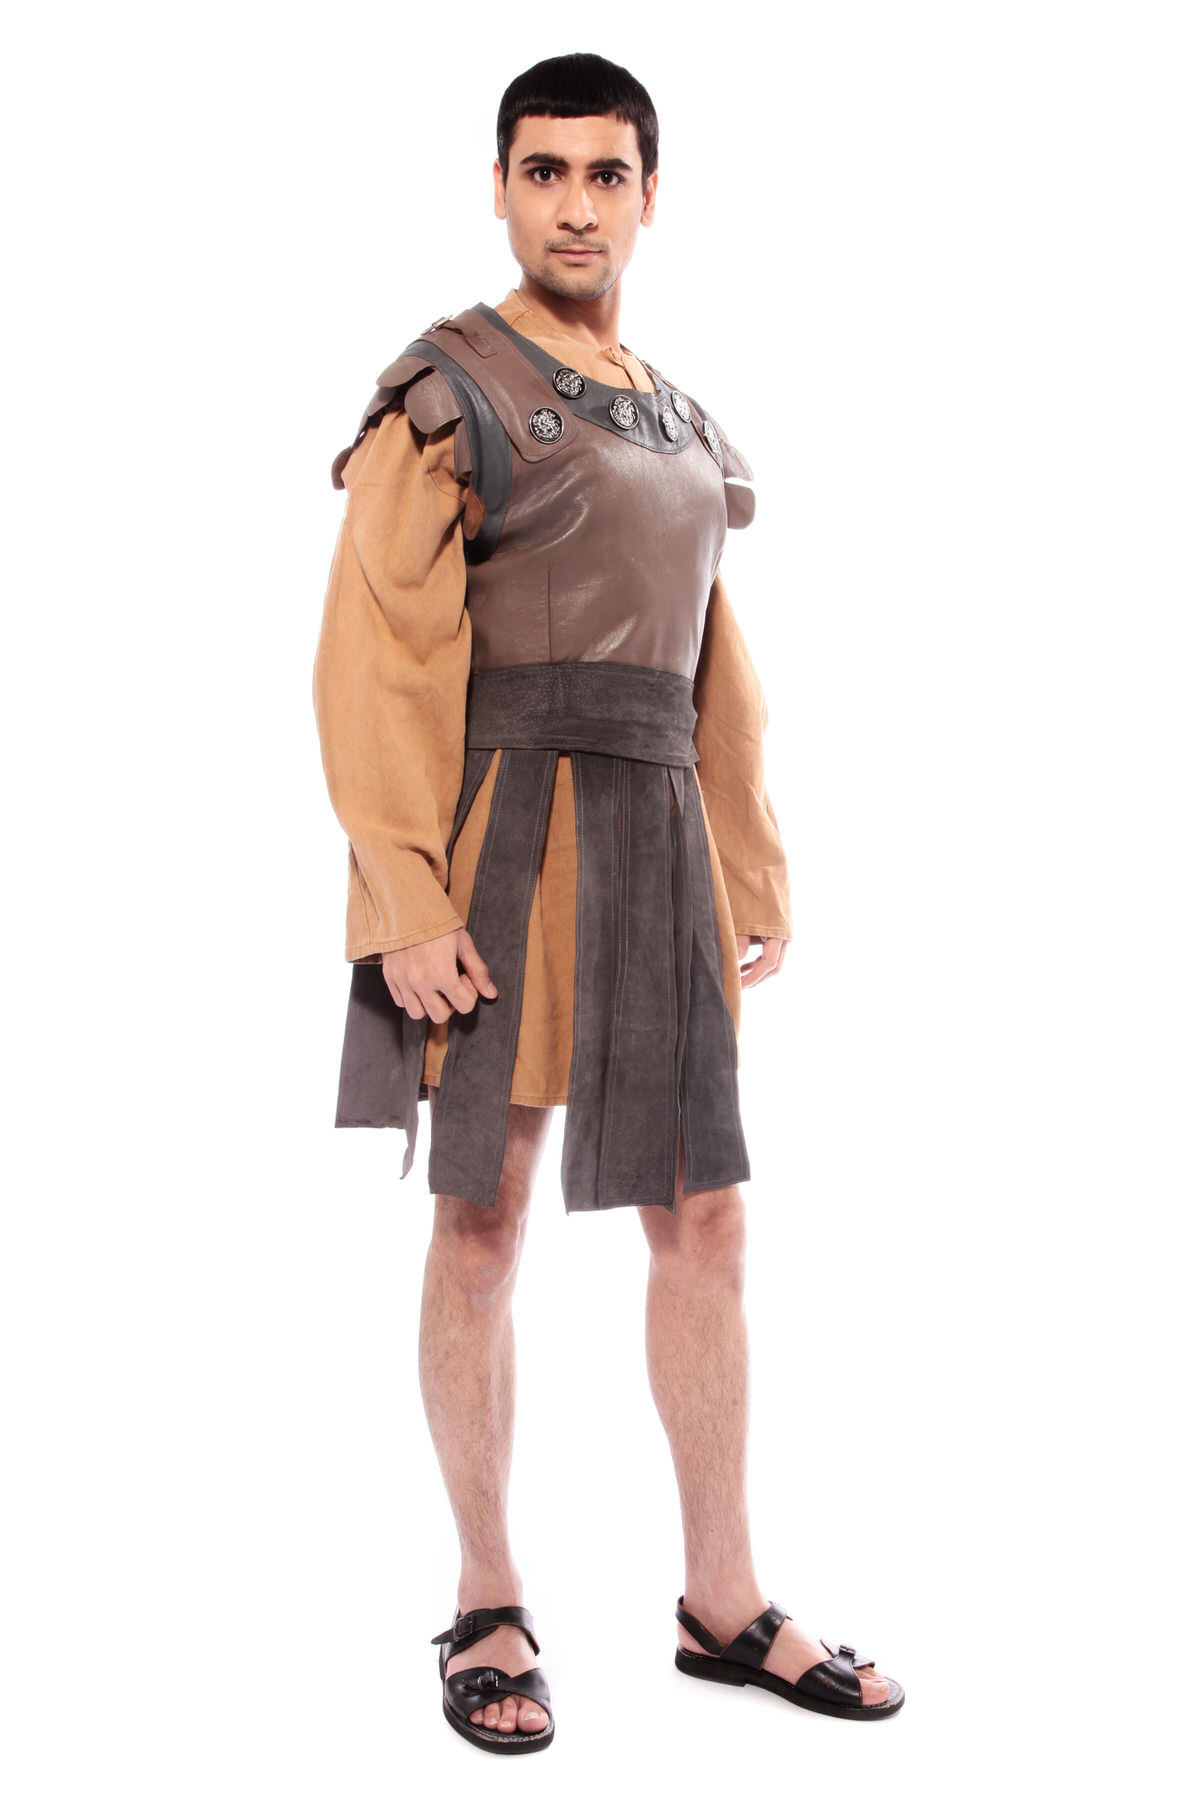 GLADIATOR COSTUME W BROWN LEATHER TUNIC